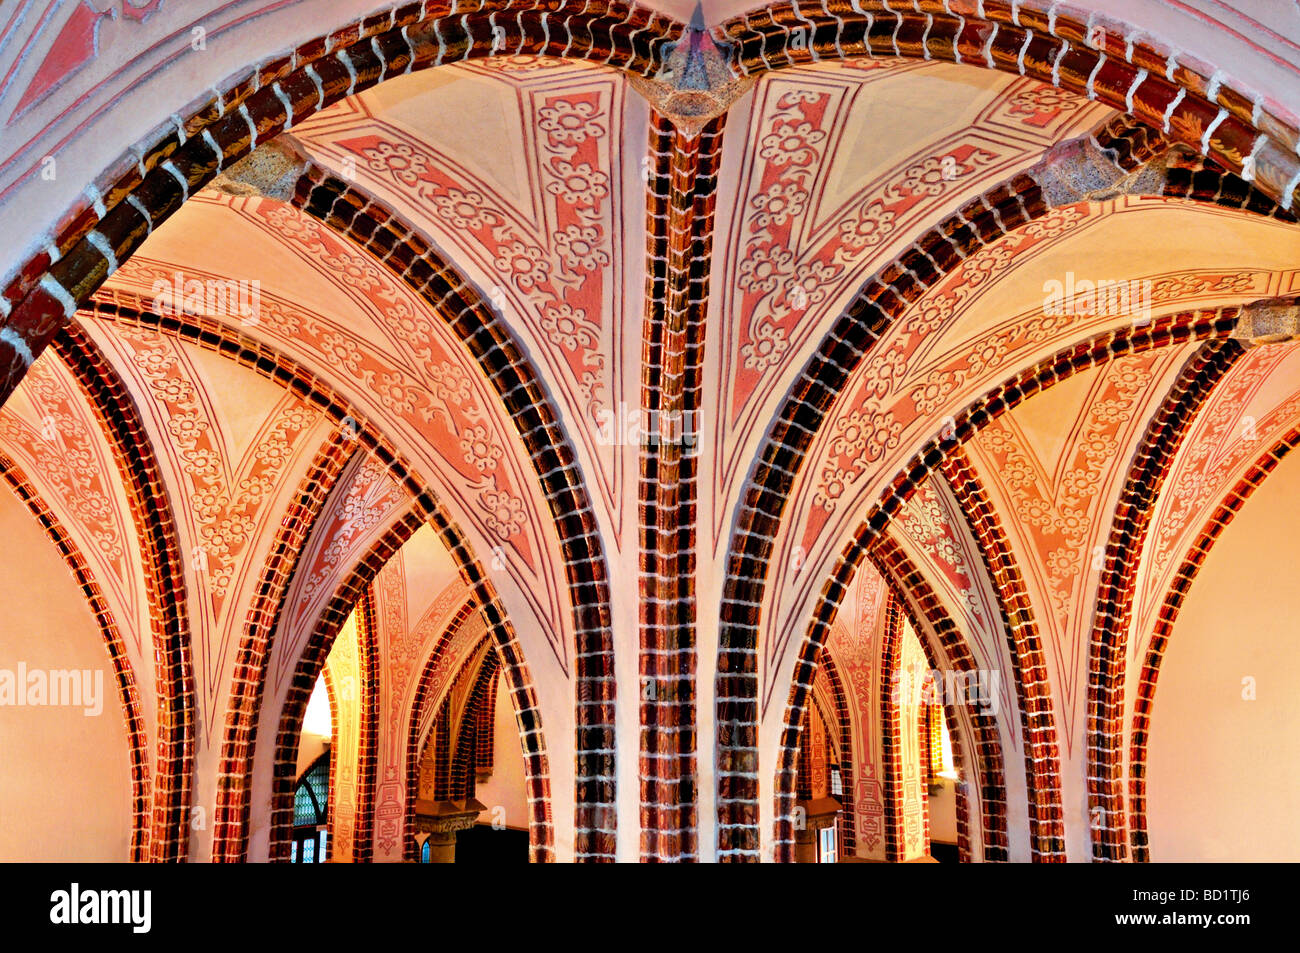 Spain, Astorga: Neo-gothic cross vault in the interior of the Bishop´s Palace by Antonio Gaudí - Stock Image